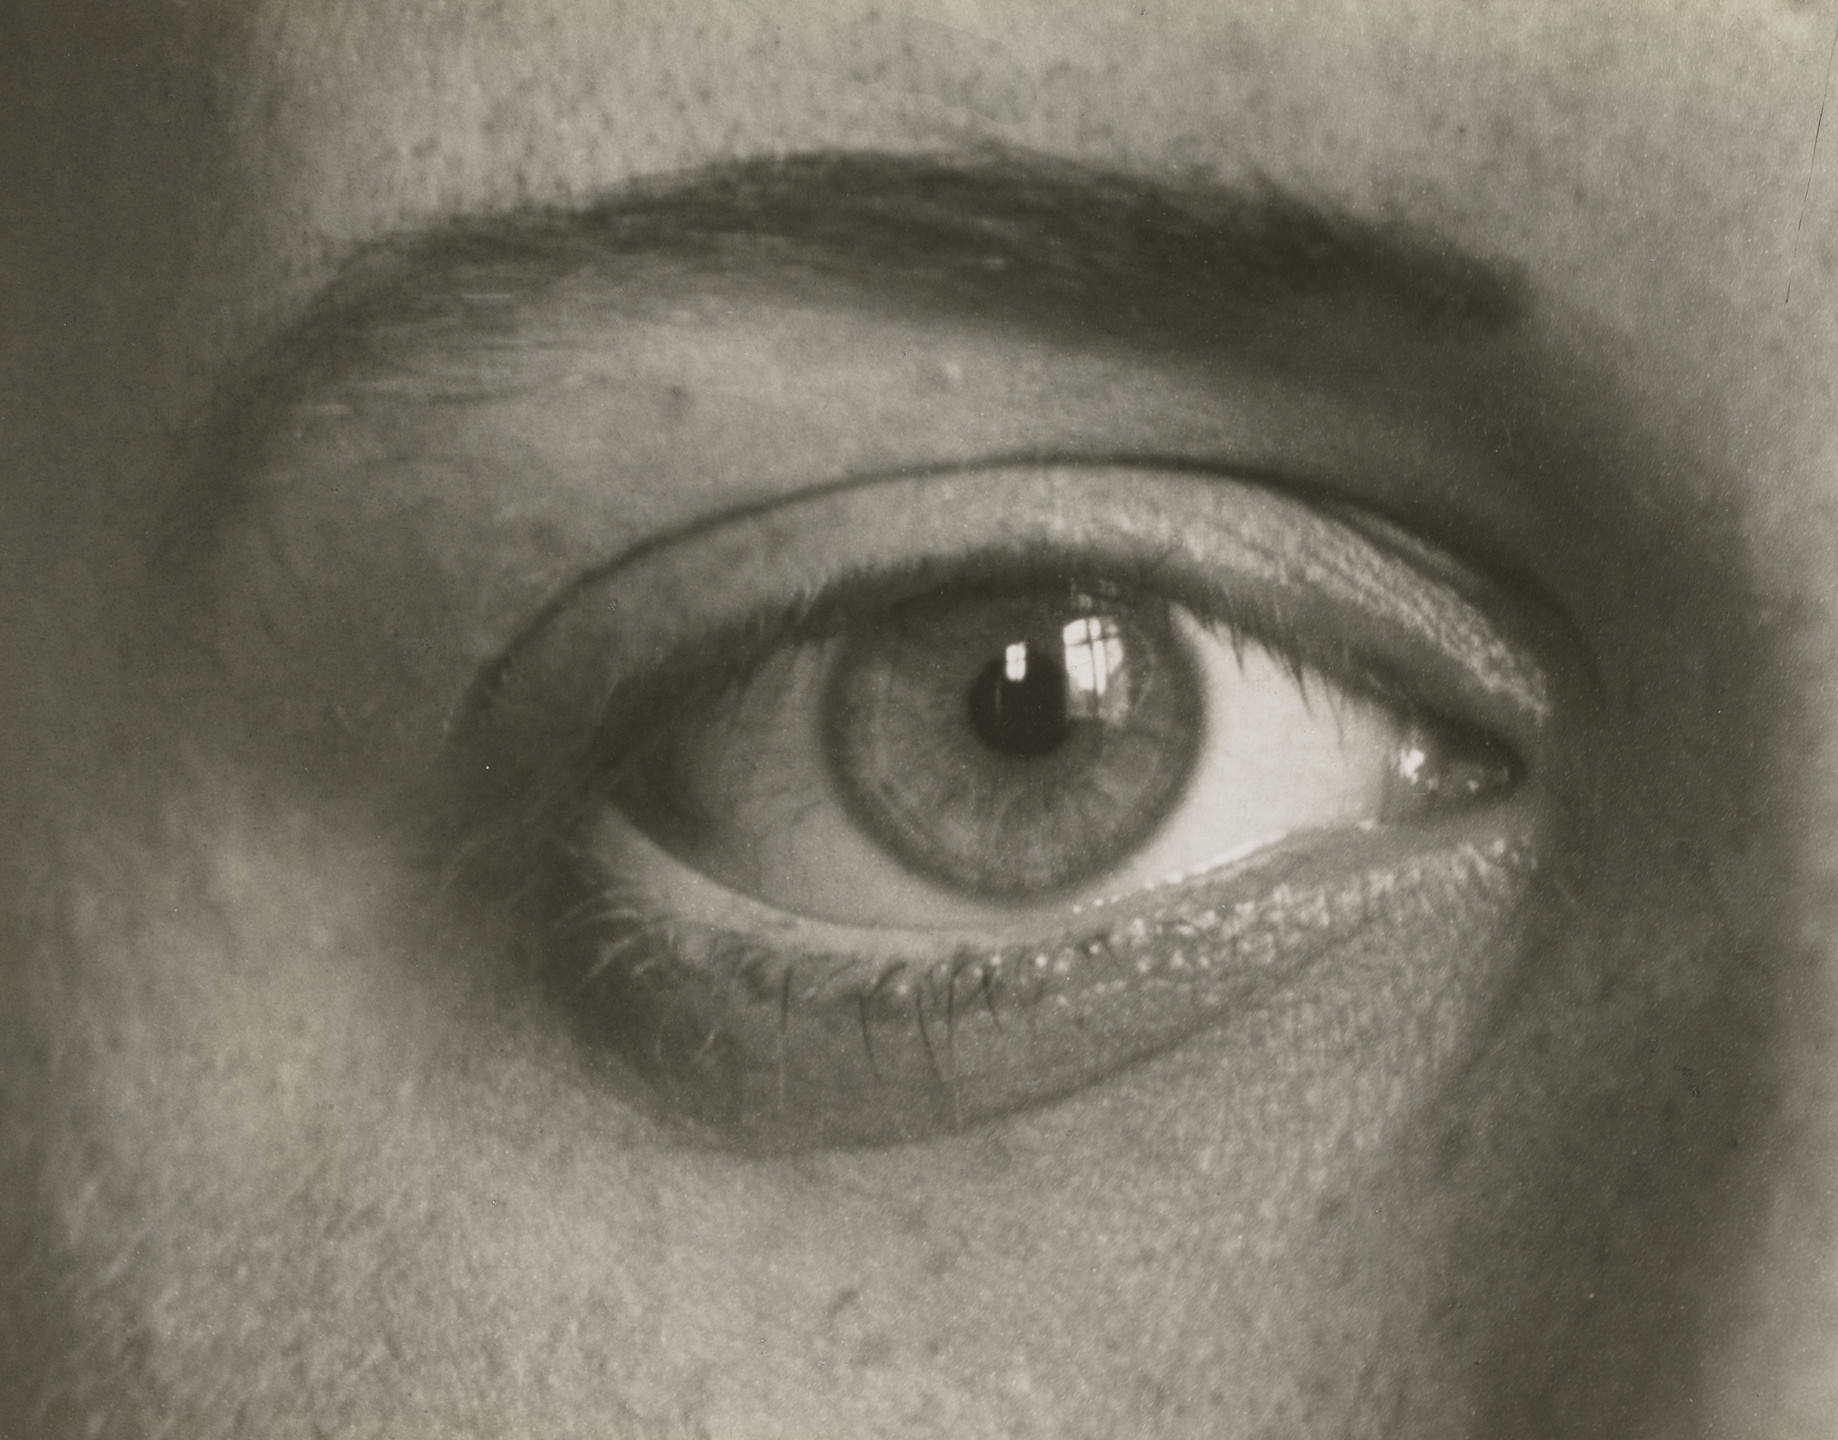 August Sander. The Right Eye of My Daughter Sigrid. 1928